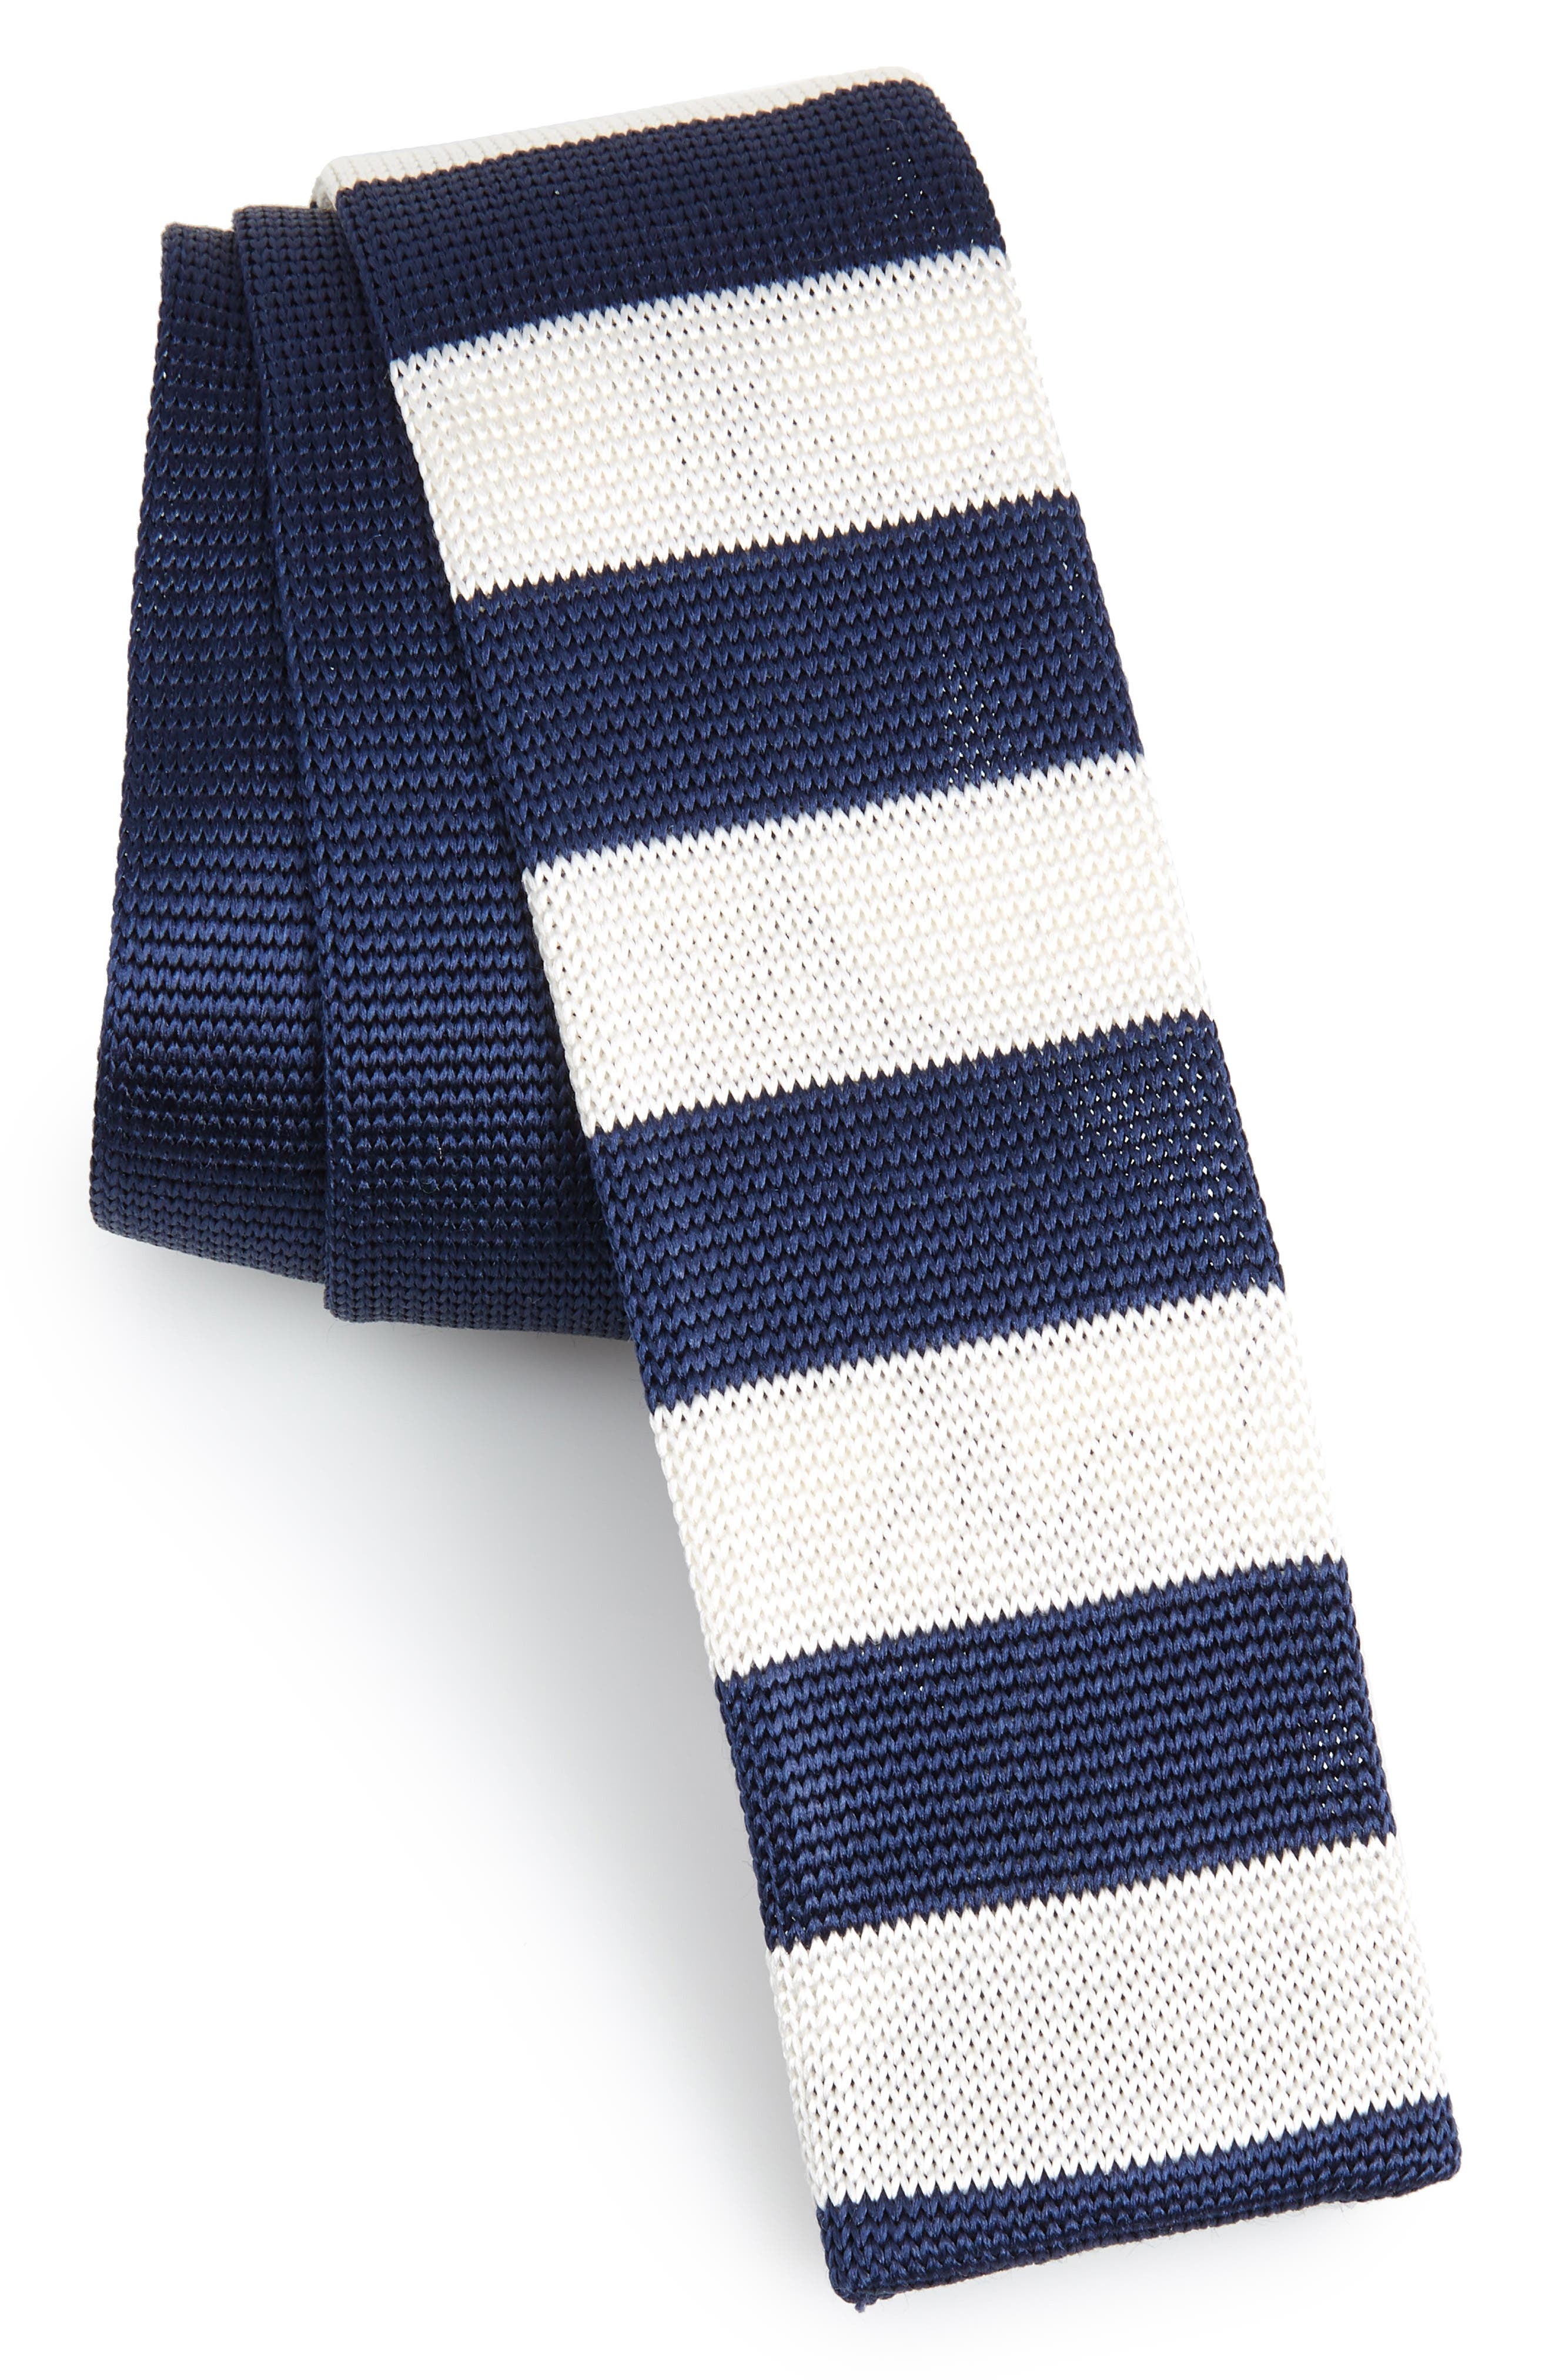 Stripe Knit Silk Skinny Tie,                             Main thumbnail 1, color,                             Navy